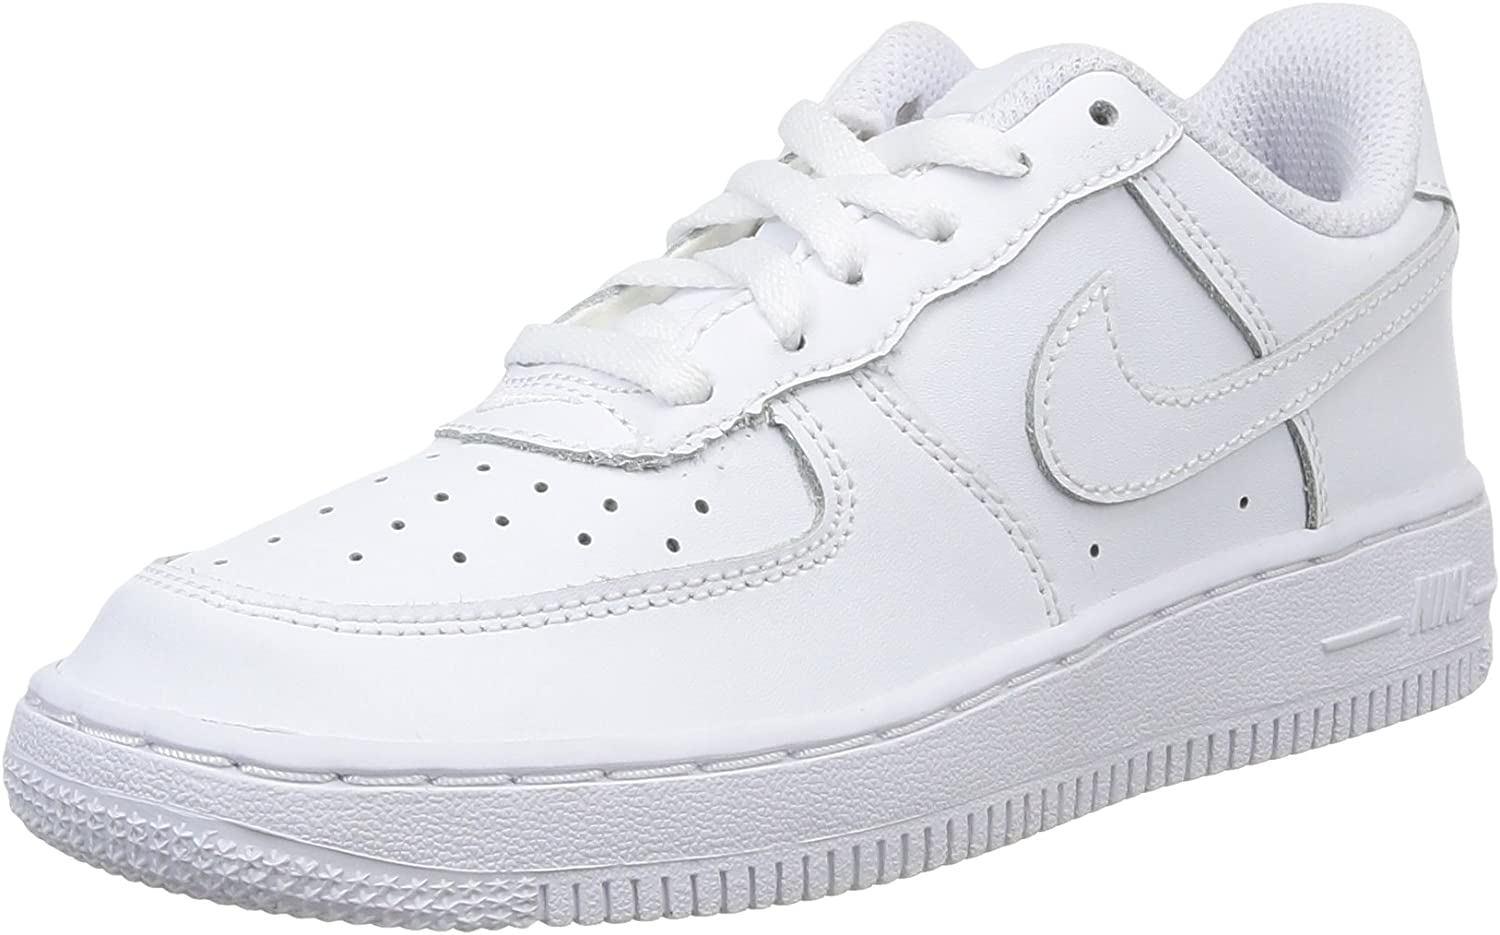 B001U5ERU8 Nike [314193-117] AIR Force 1 PS PRE-School Shoes White/White 71LqPTPTYRL.UL1500_